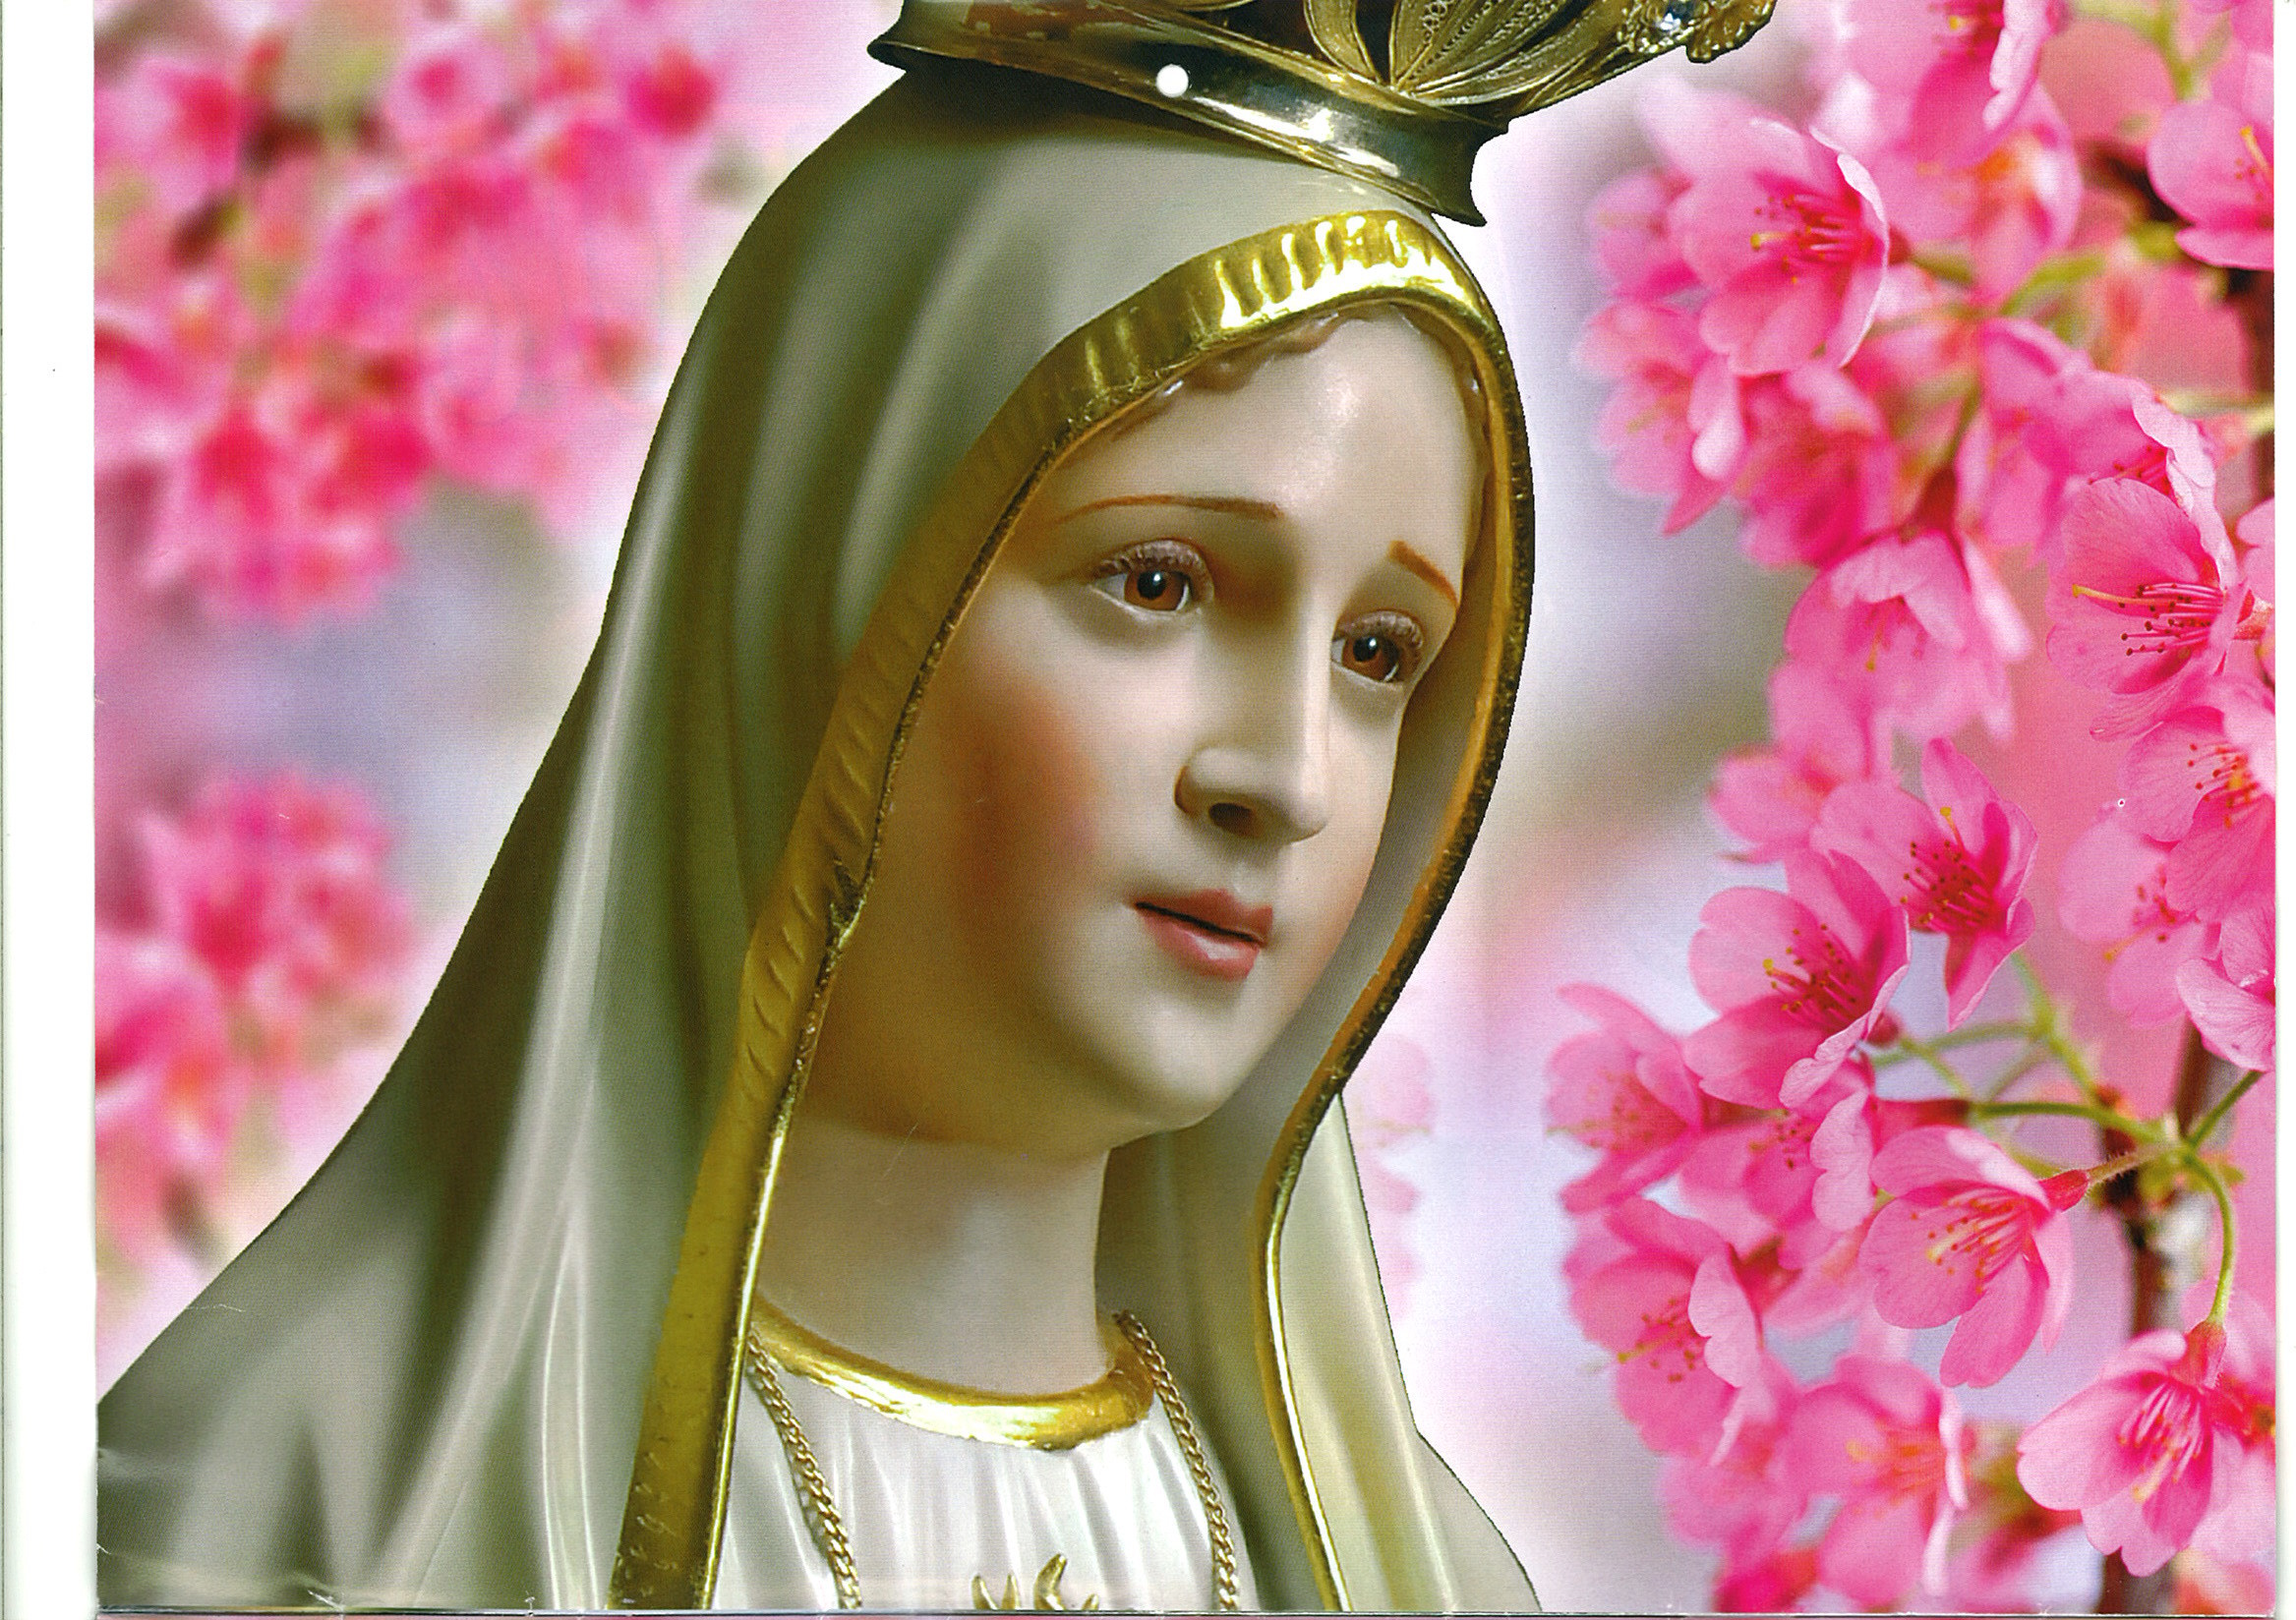 Mother Mary Wallpaper 53 images 2335x1648